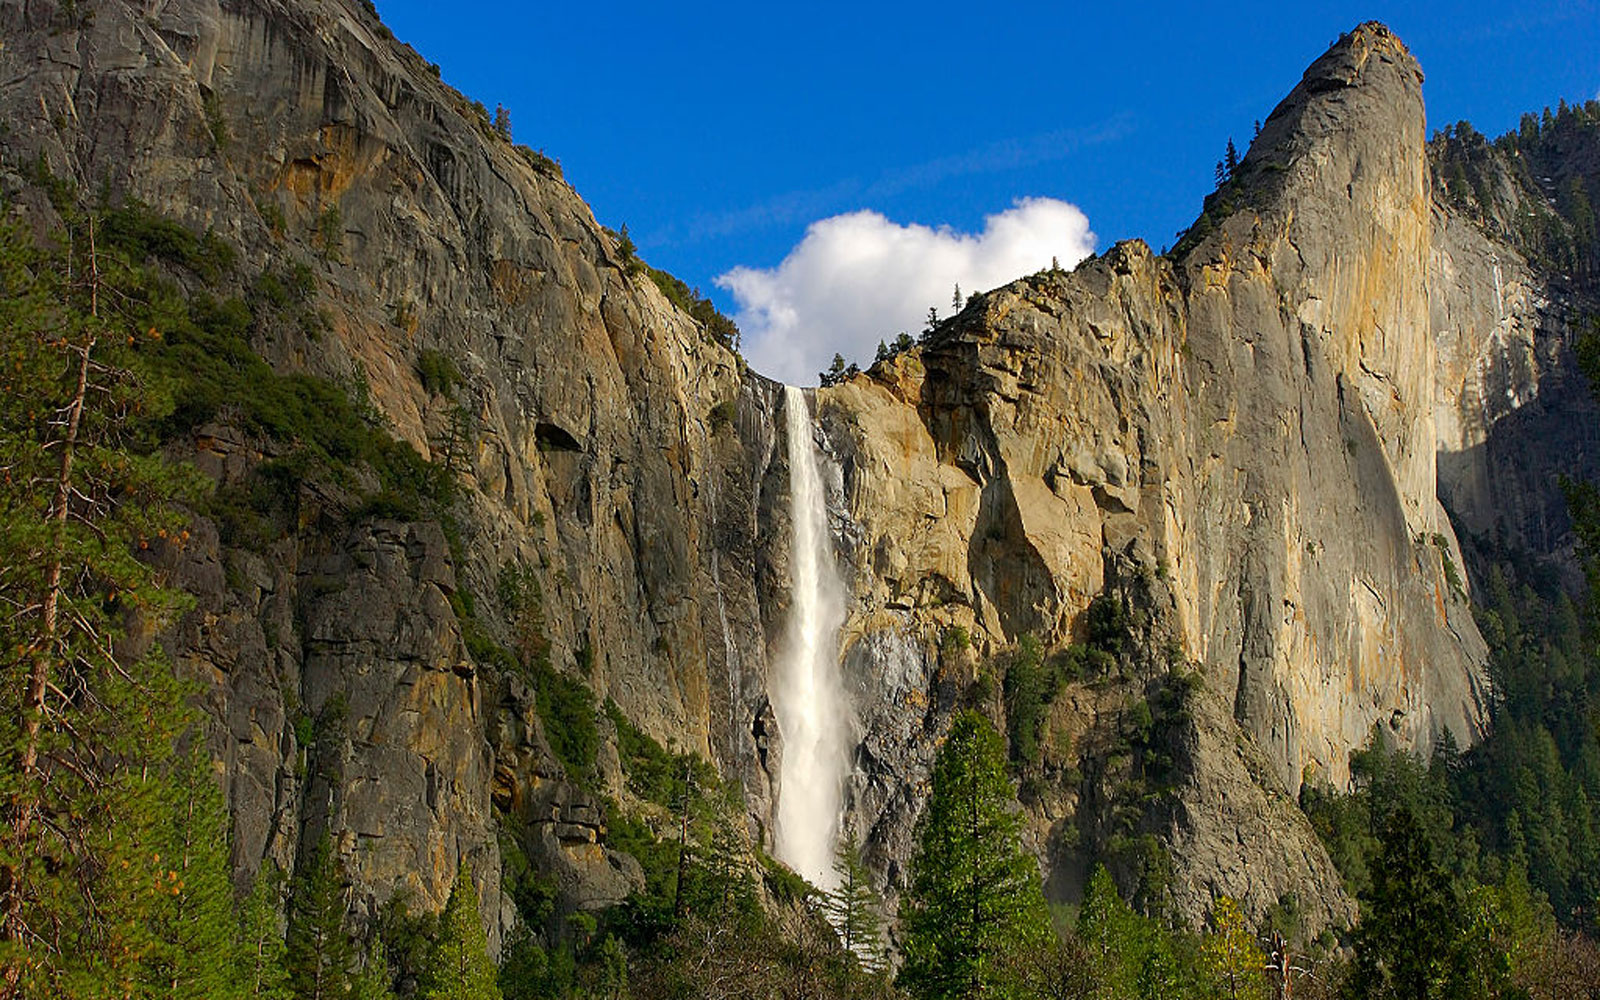 21-year-old Tourist Dies After Slipping and Falling at Yosemite National Park Waterfall